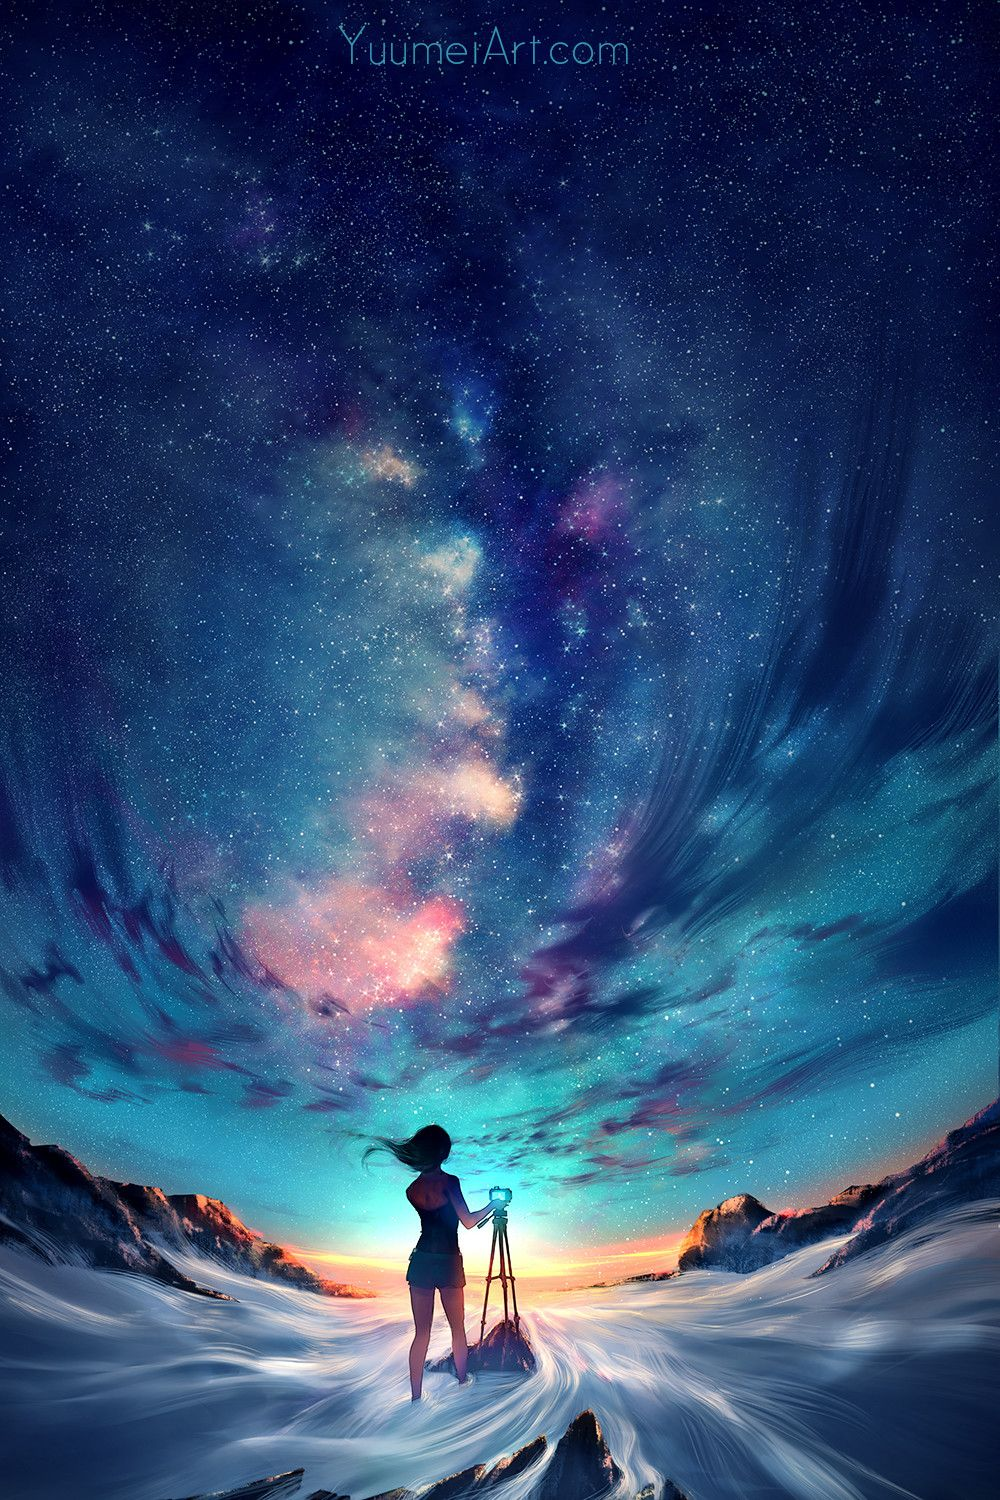 Capture the Sky > loving the atmosphere in this #conceptart by Yuumei